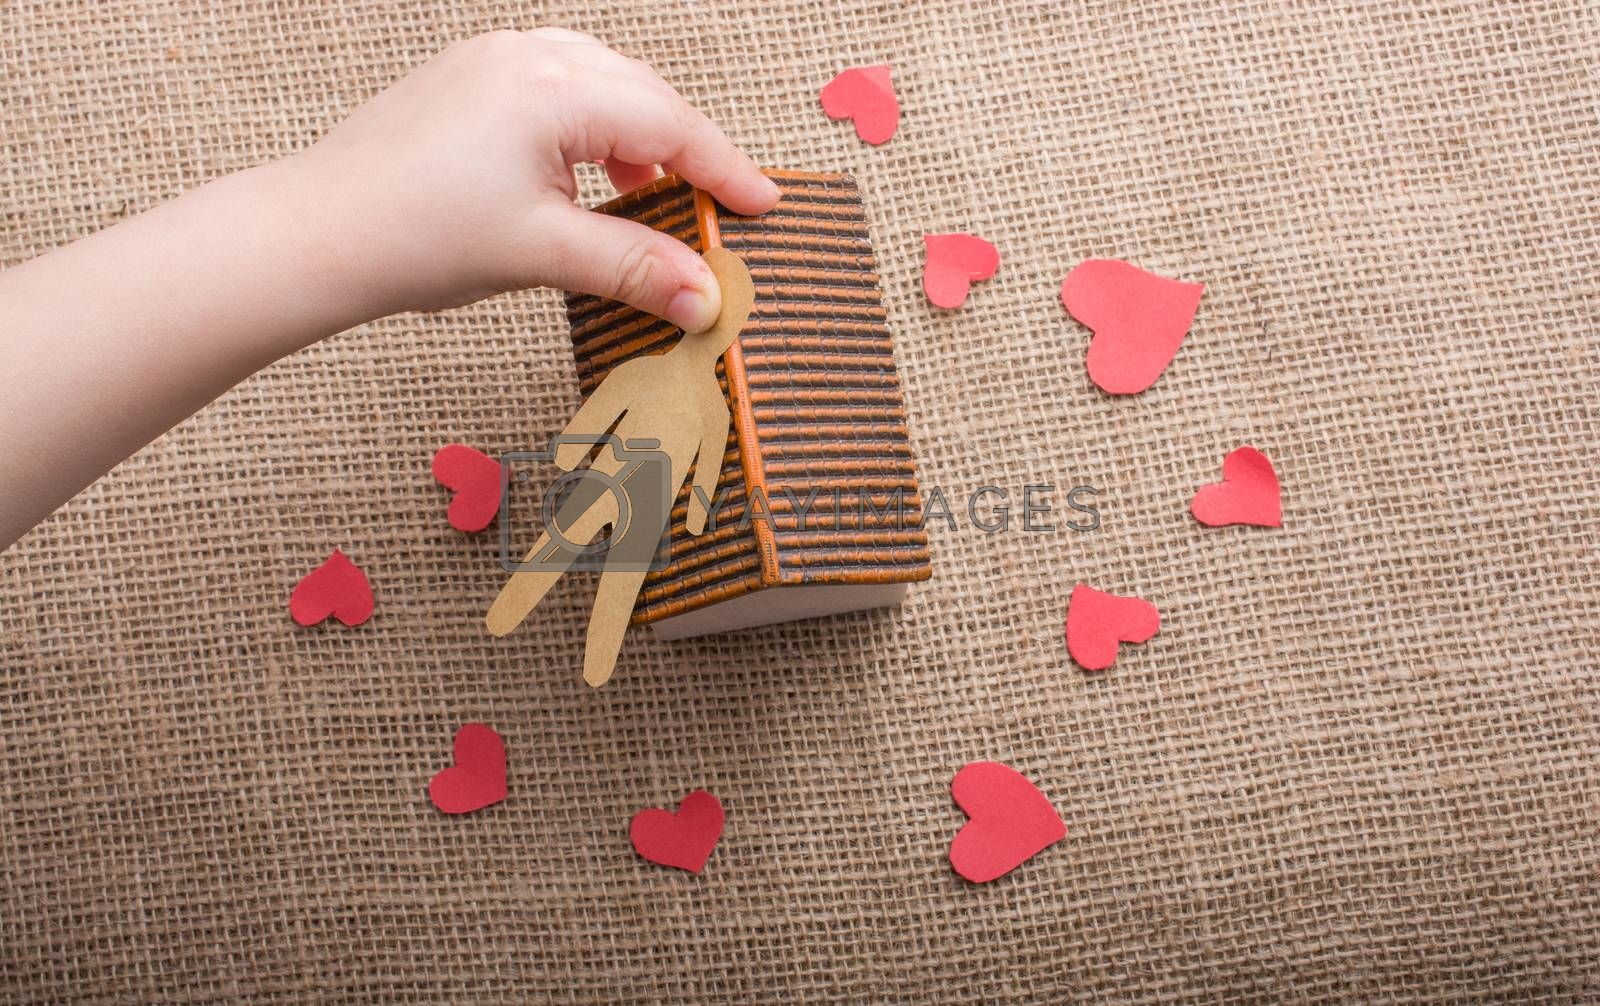 Heart shaped icons and paper house on canvas